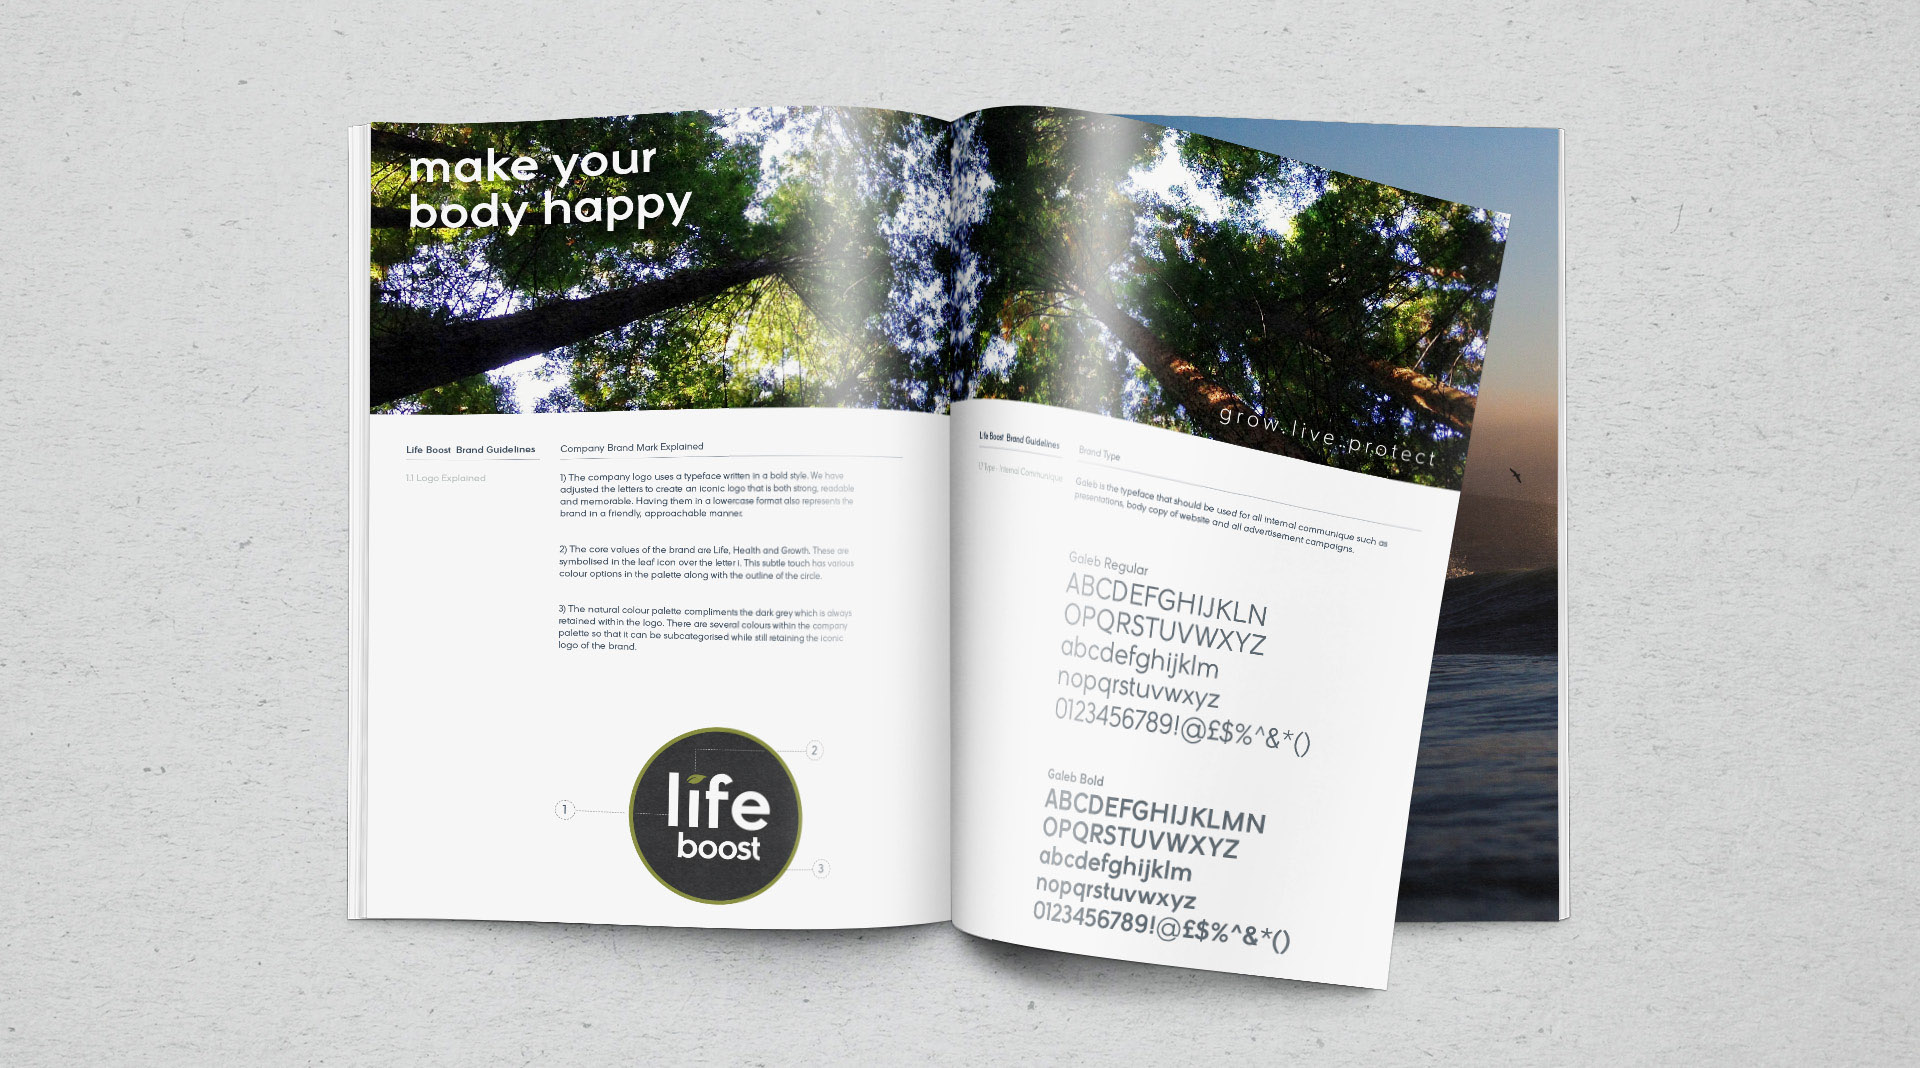 Life boost branding toolkit for vitamins and supplements